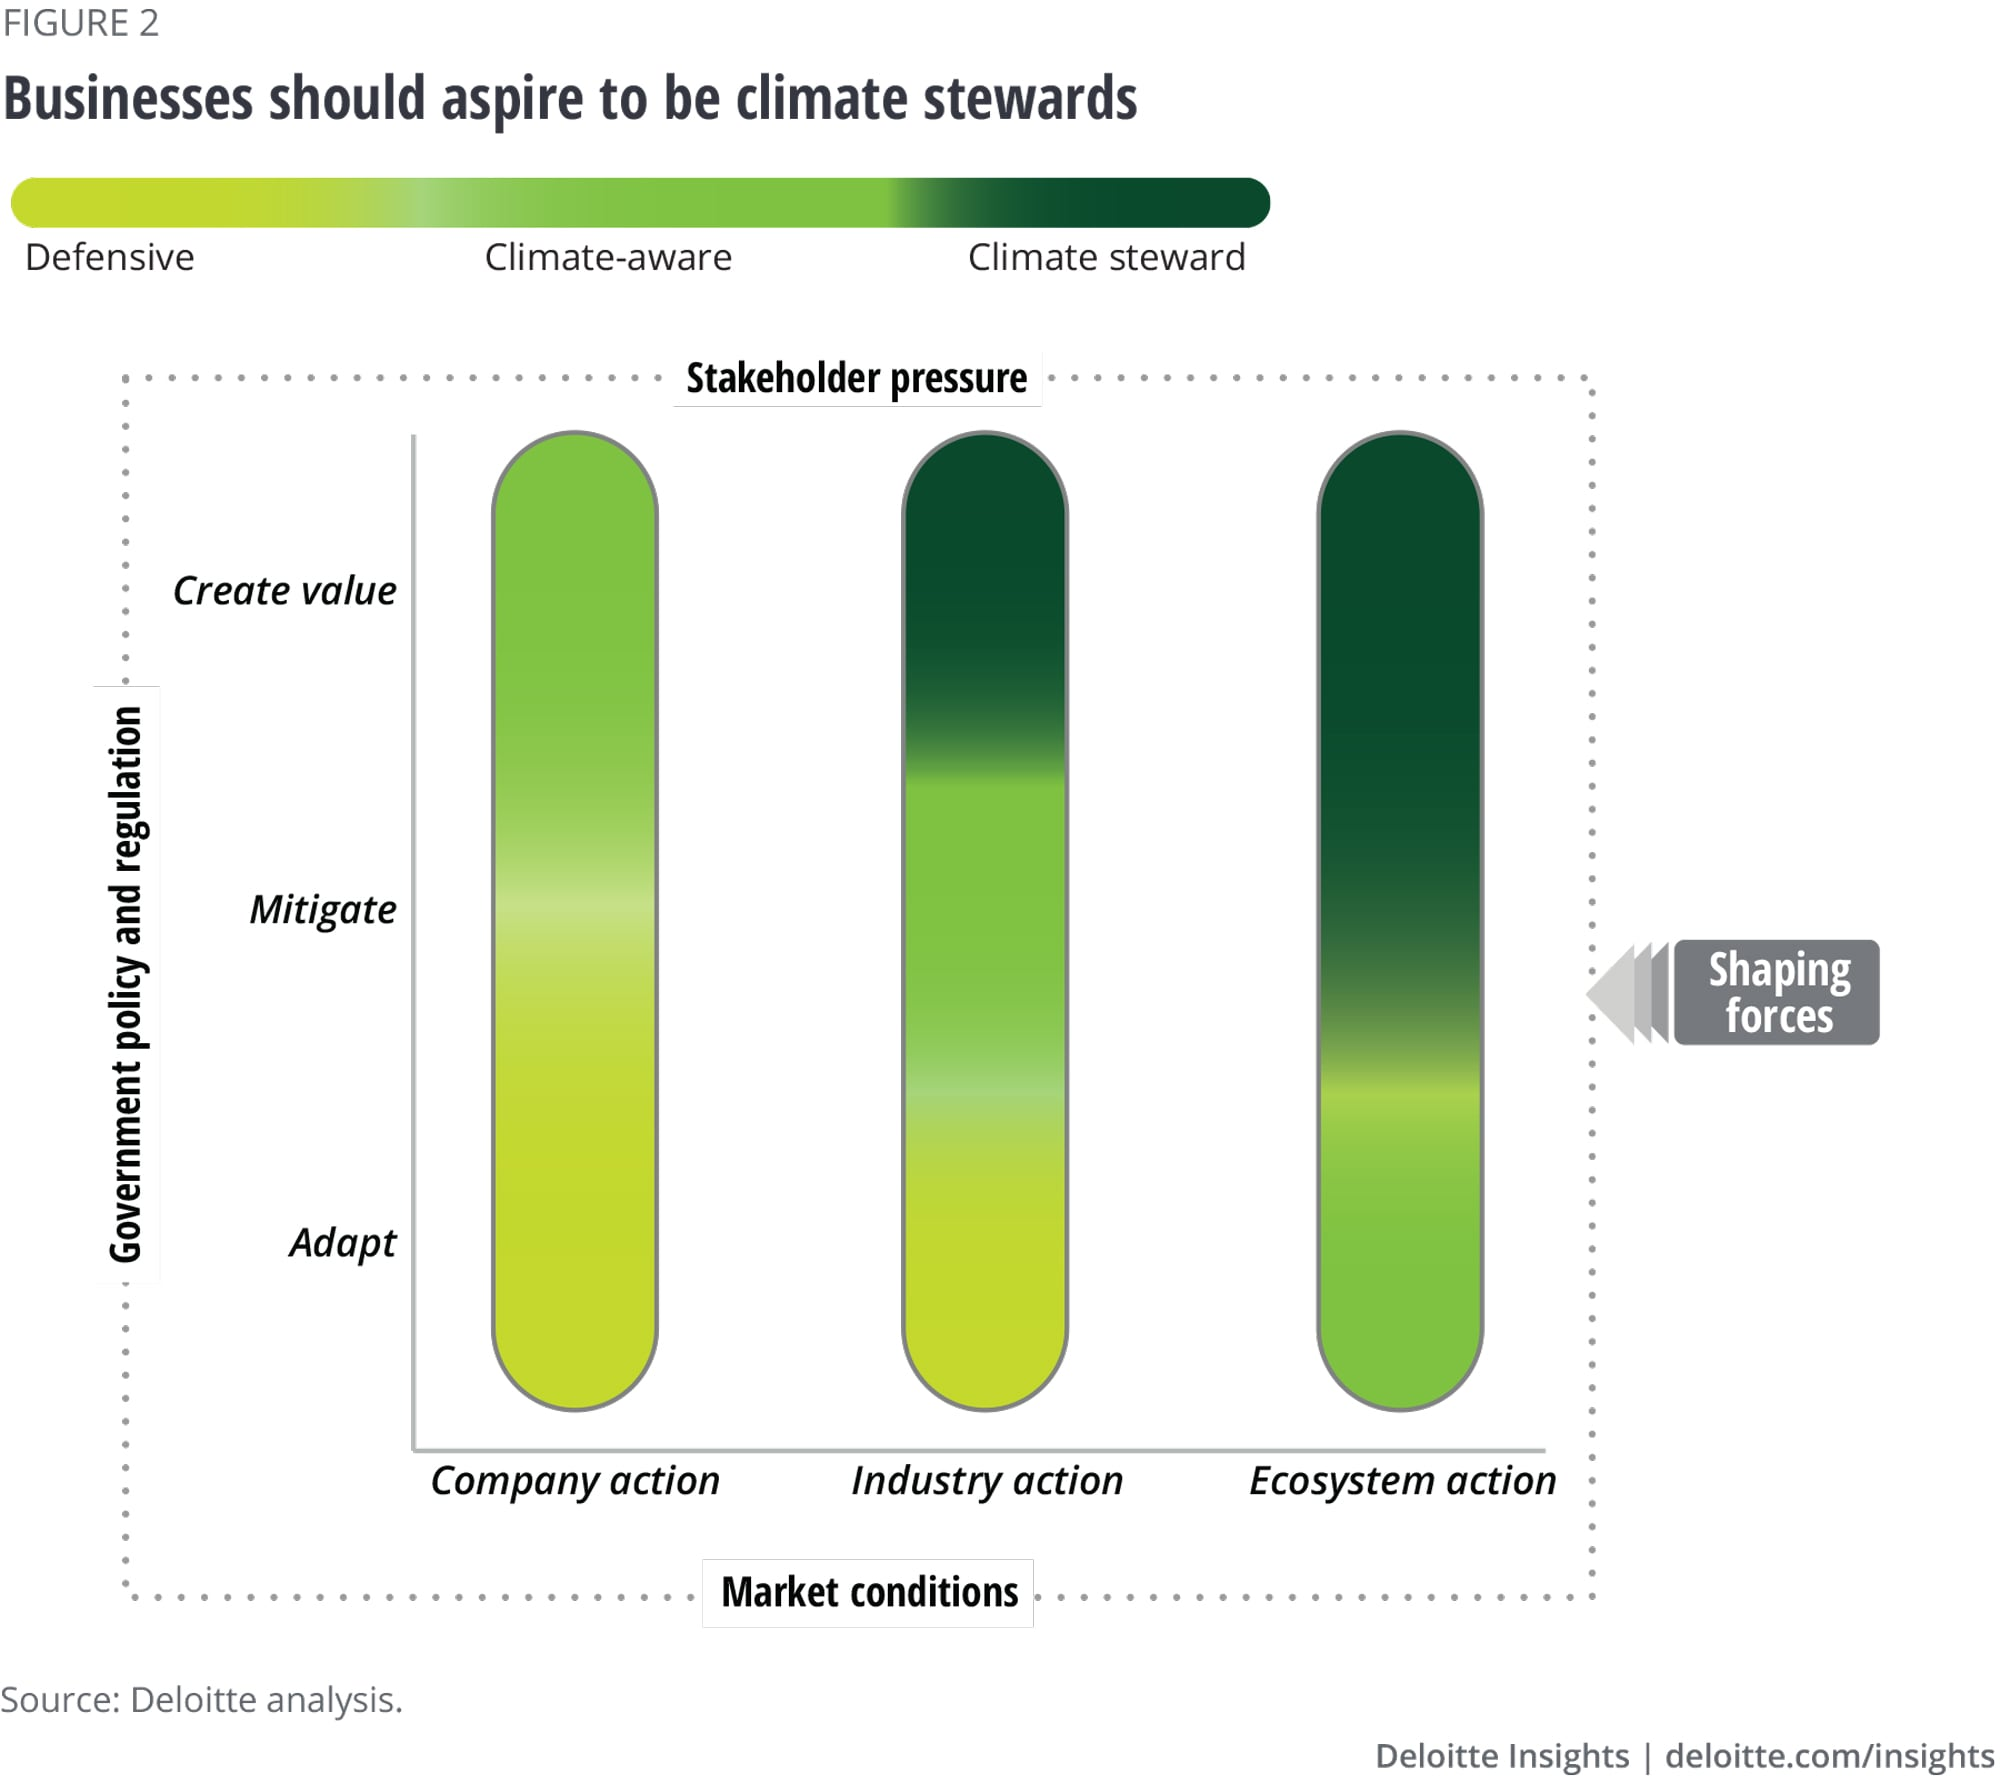 Businesses should aspire to embed climate throughout the organization